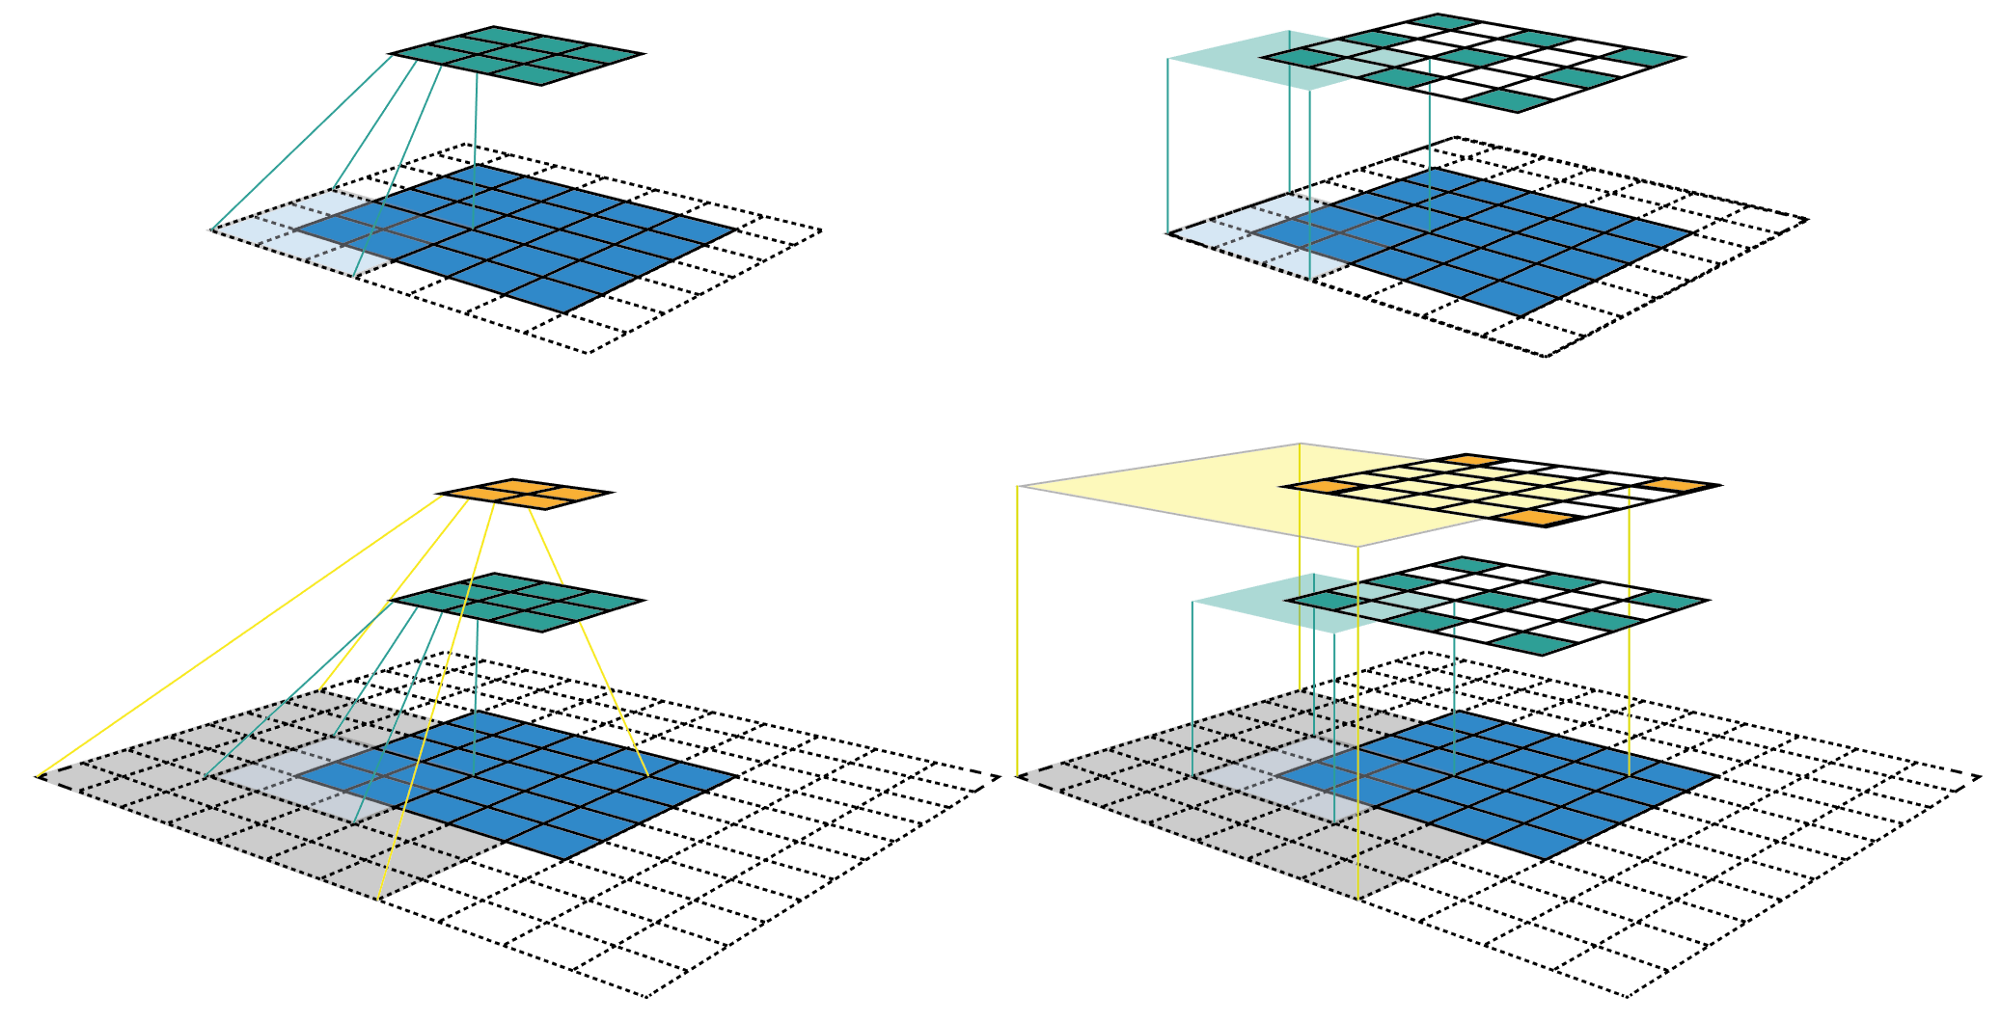 A guide to receptive field arithmetic for Convolutional Neural Networks